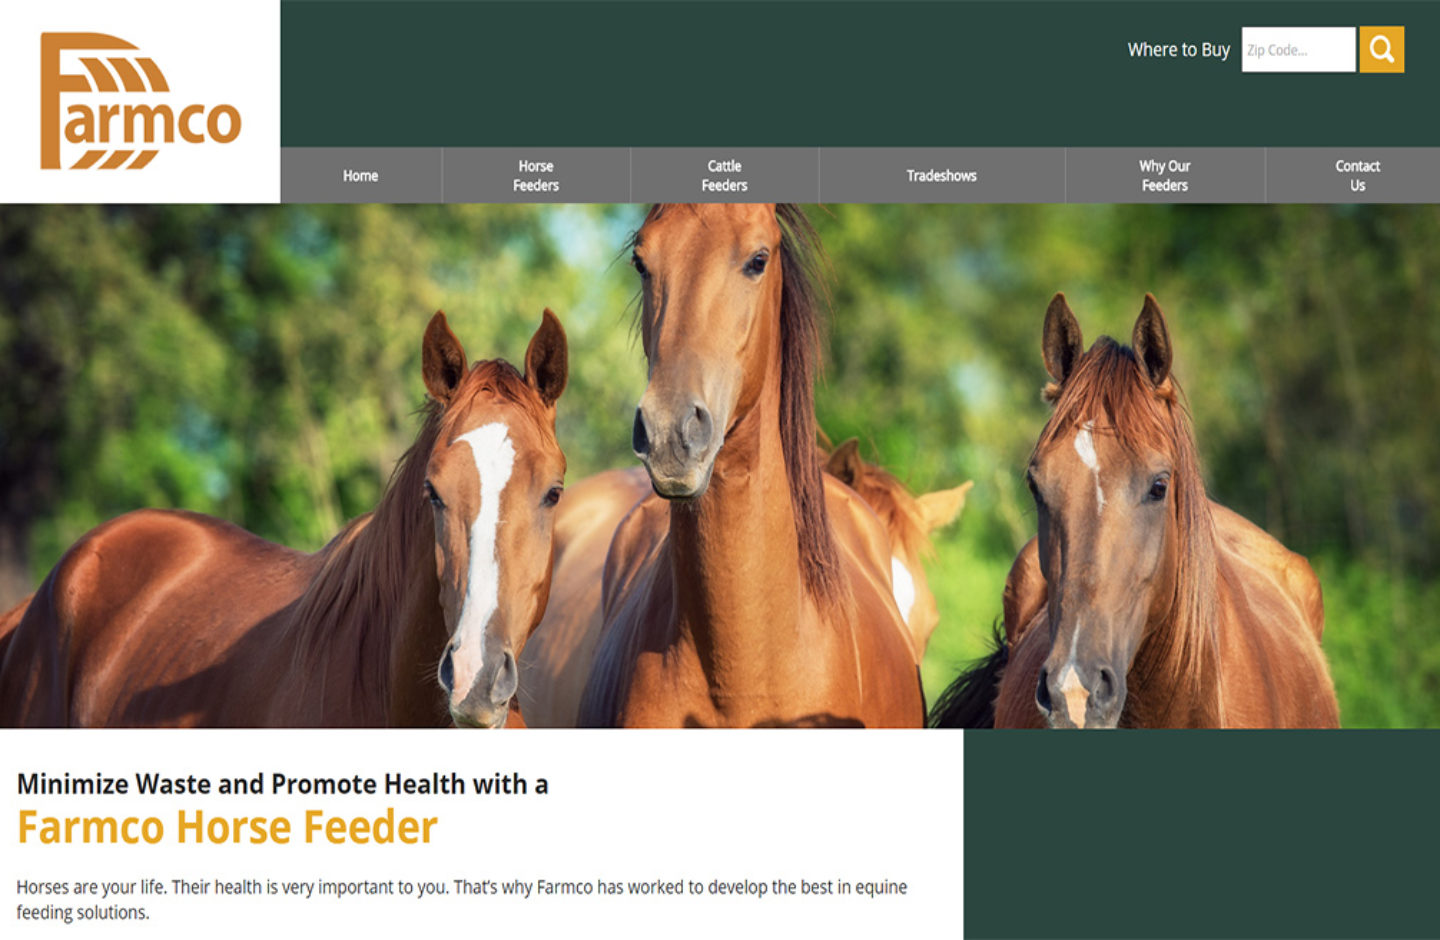 Farmco Horse Feeders